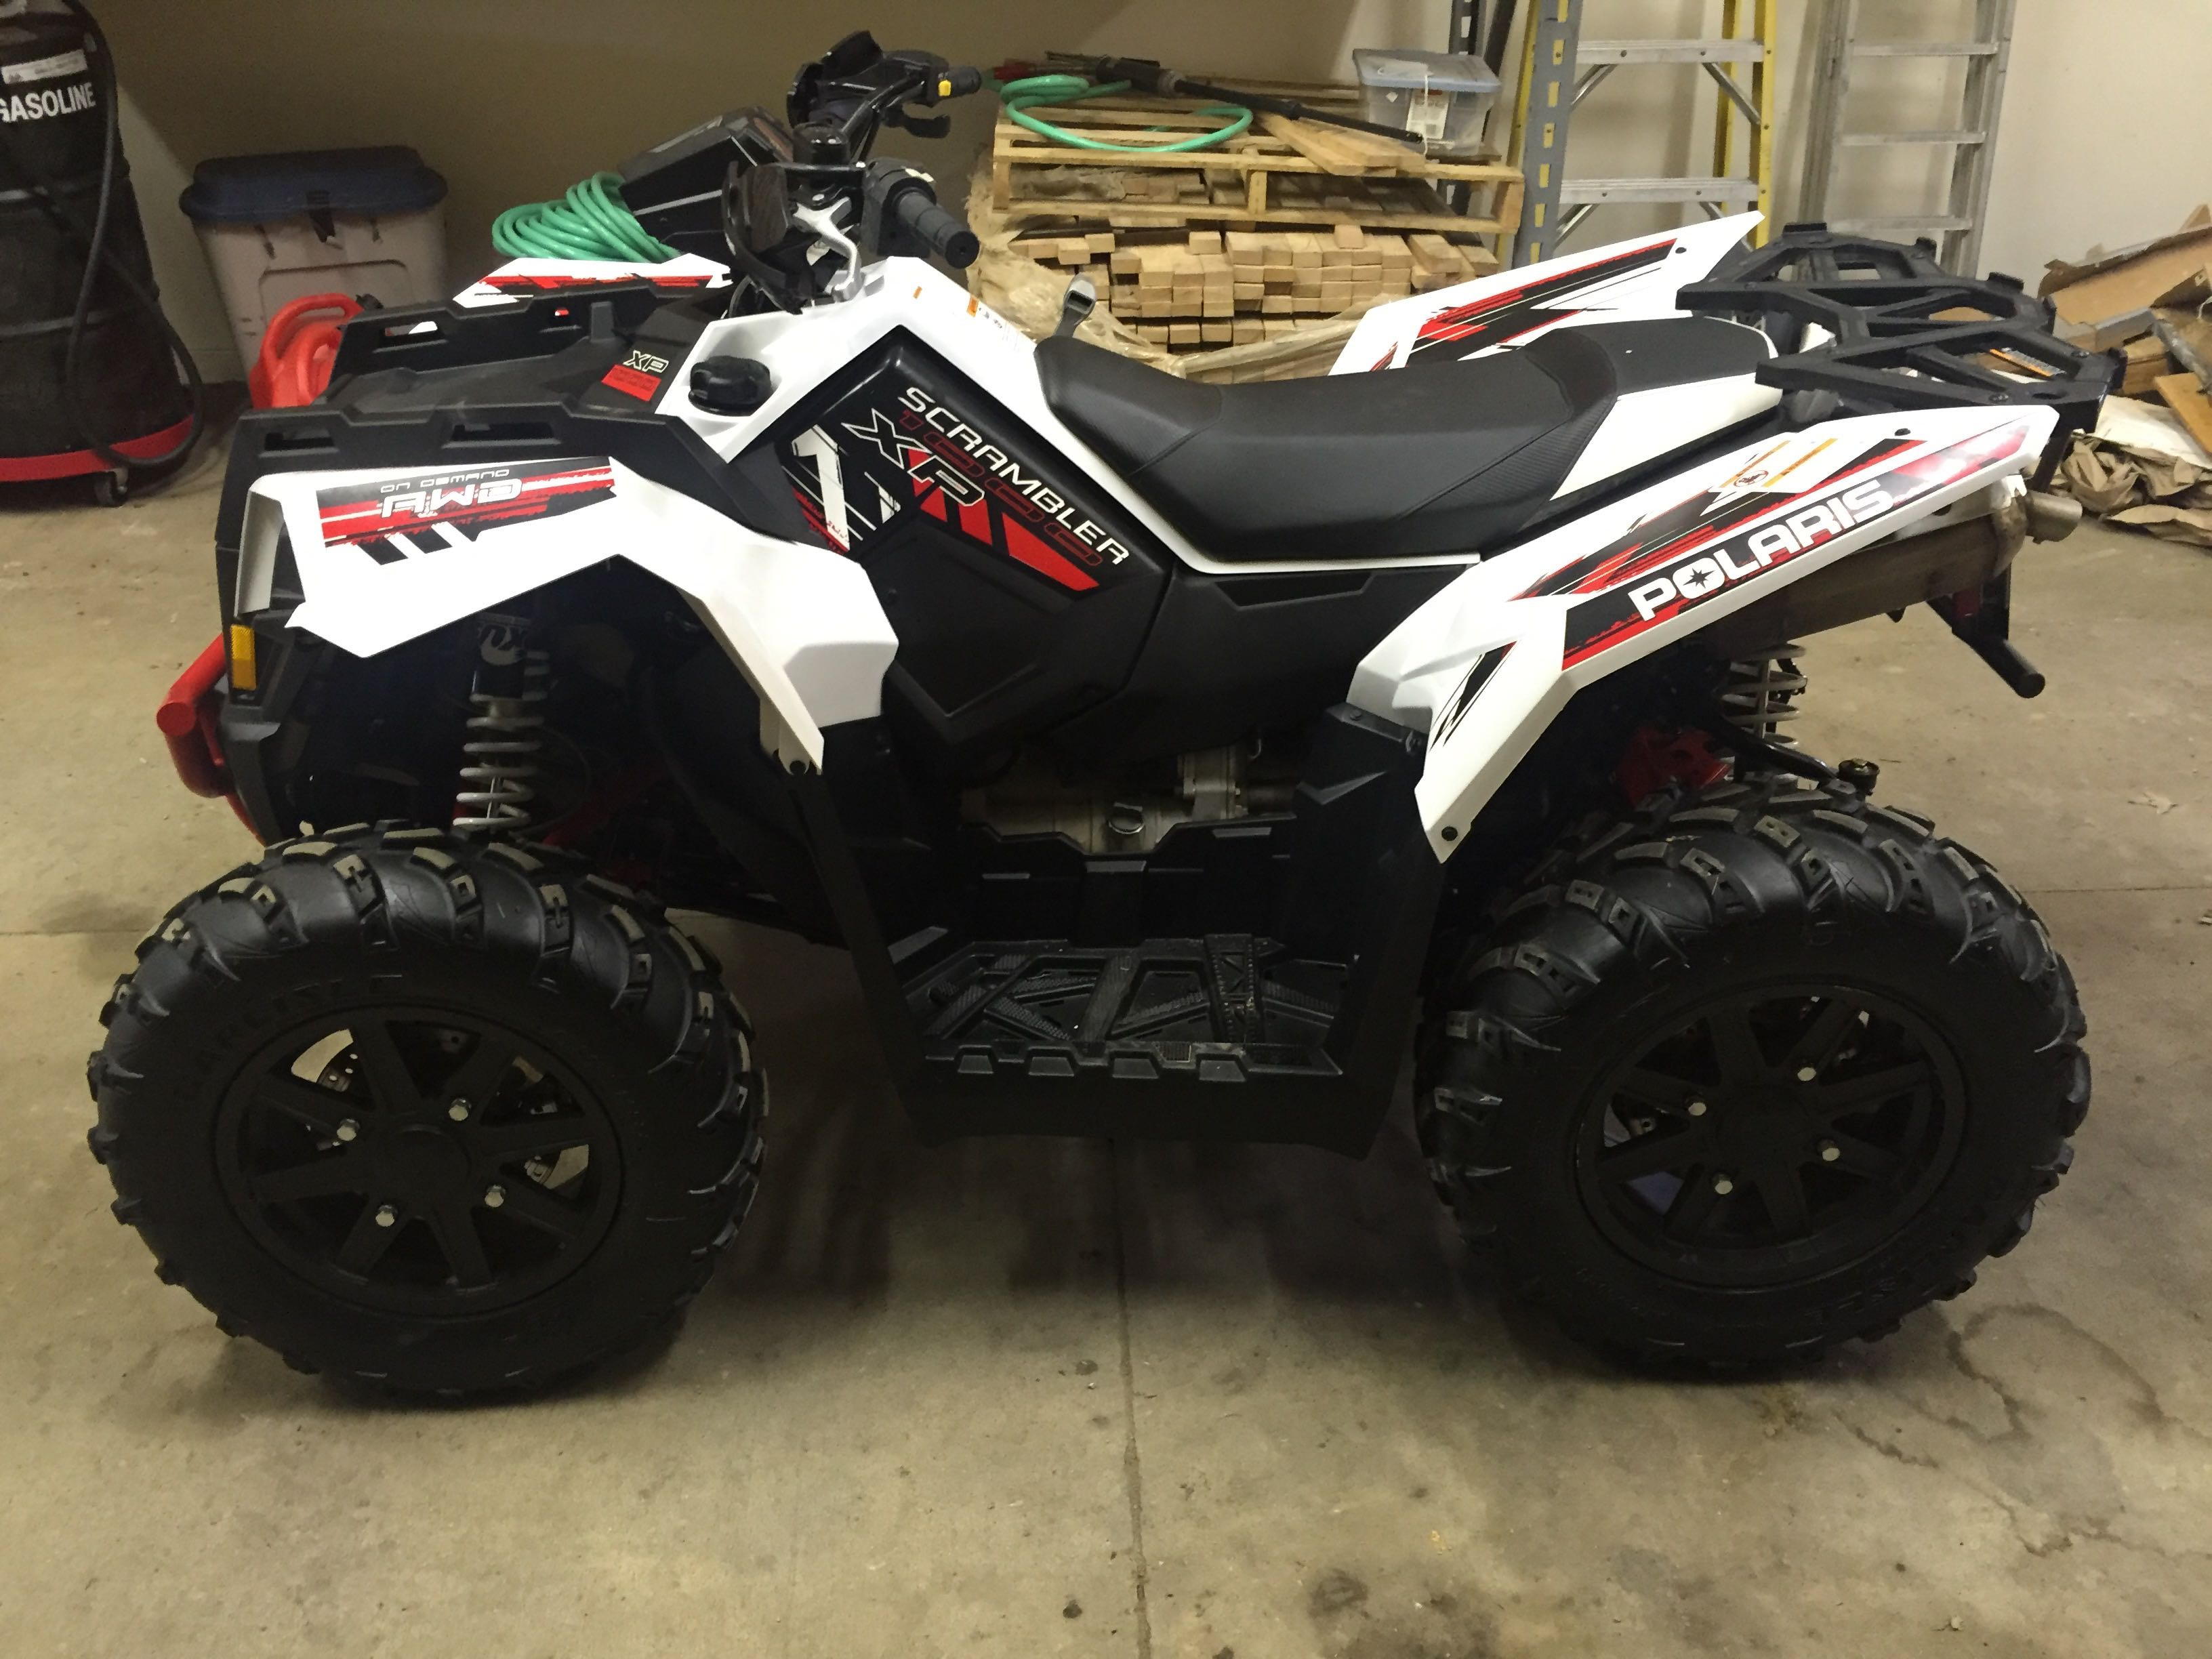 2015 scrambler 1000 for sale polaris atv forum. Black Bedroom Furniture Sets. Home Design Ideas